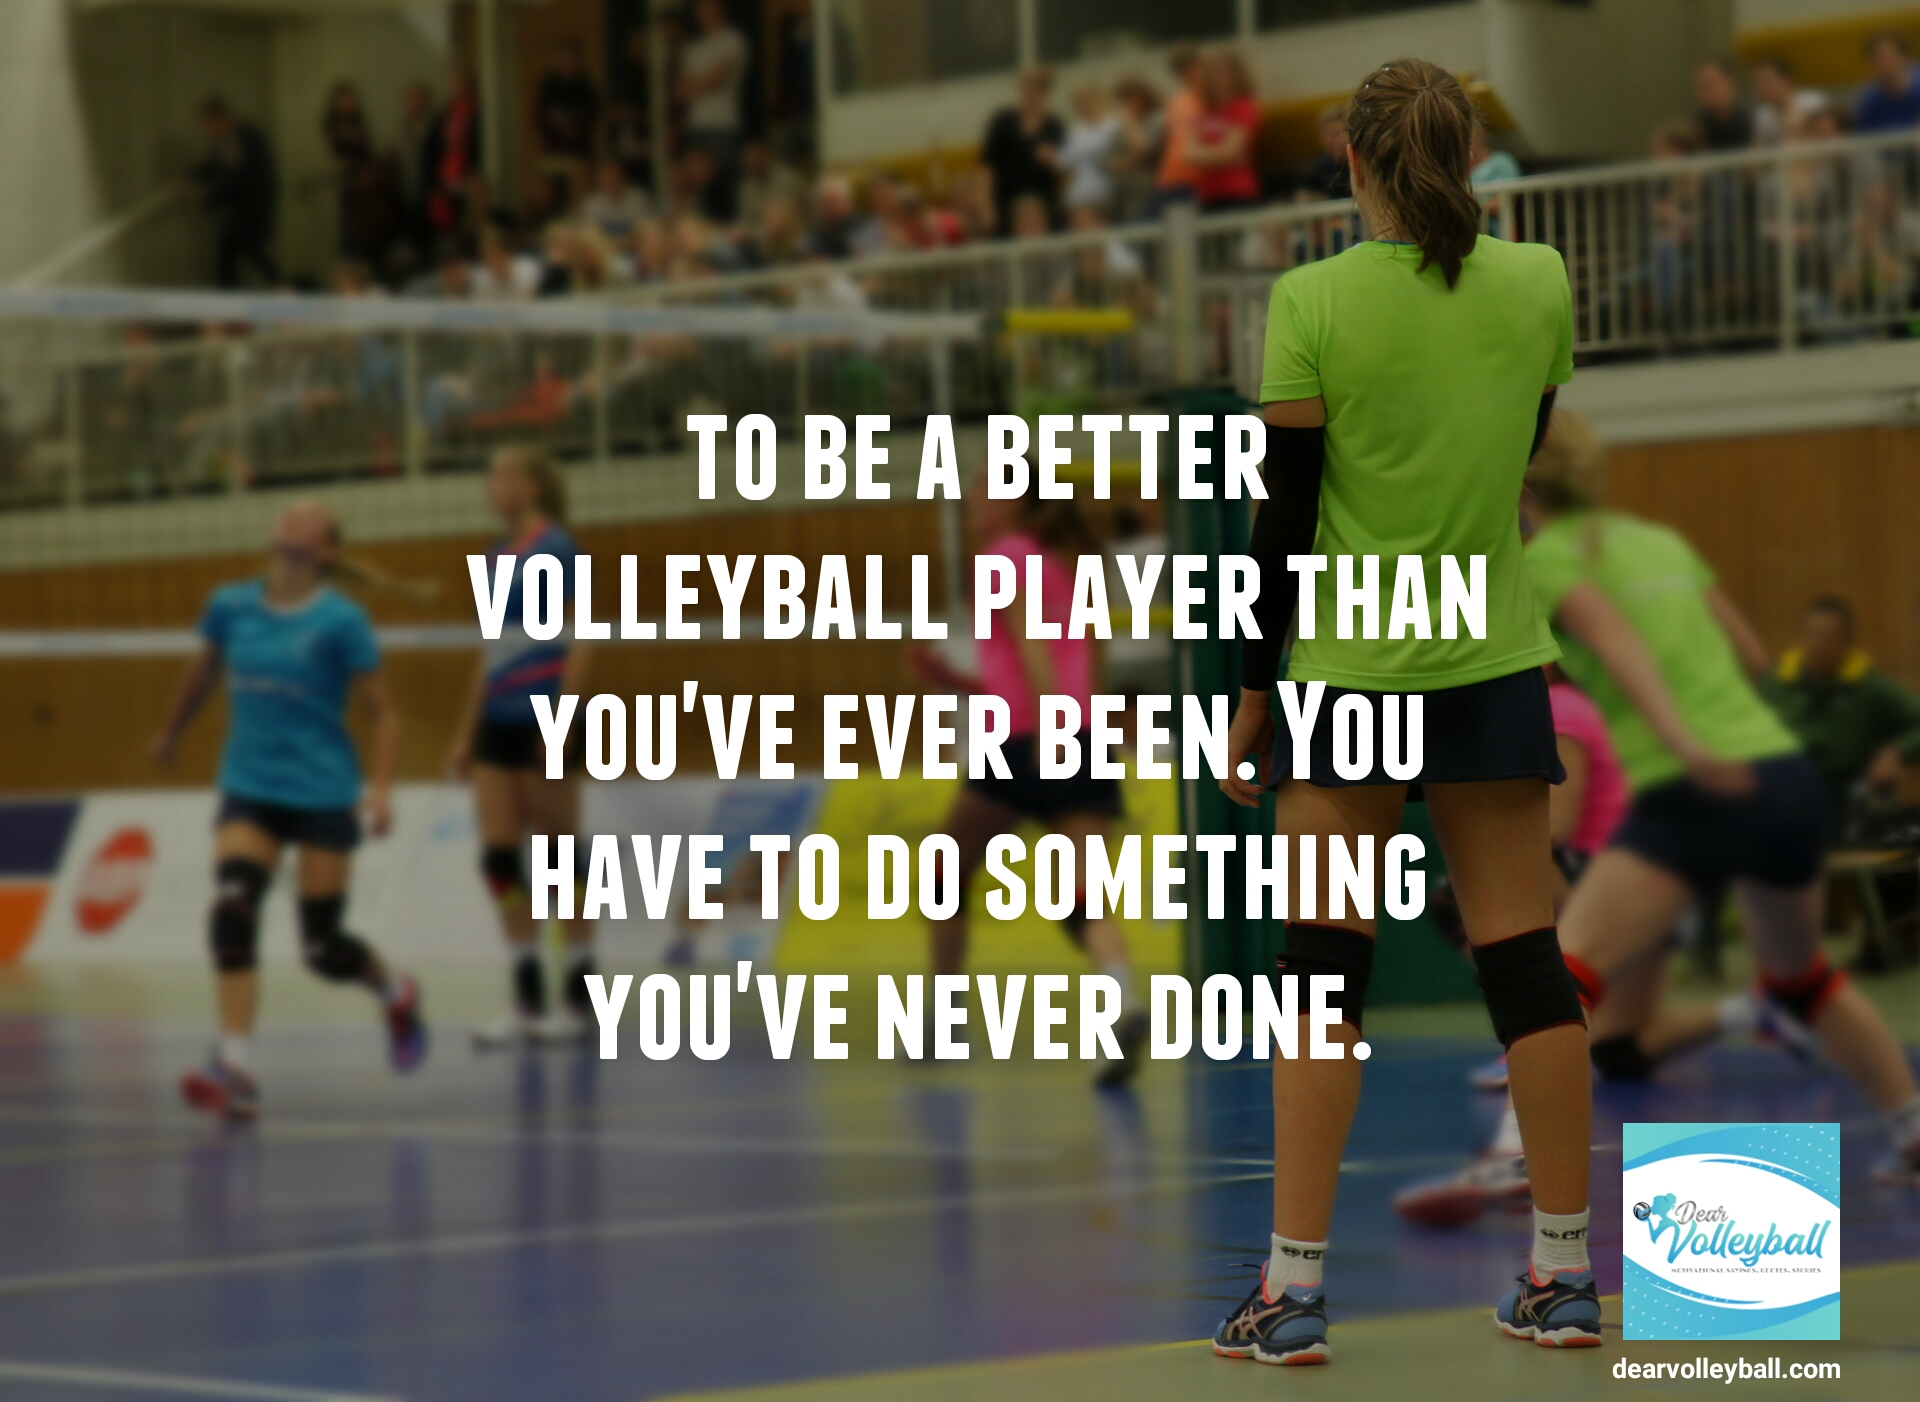 To be a better volleyball player than                                             you've ever been you have to do                                               something you've never done.